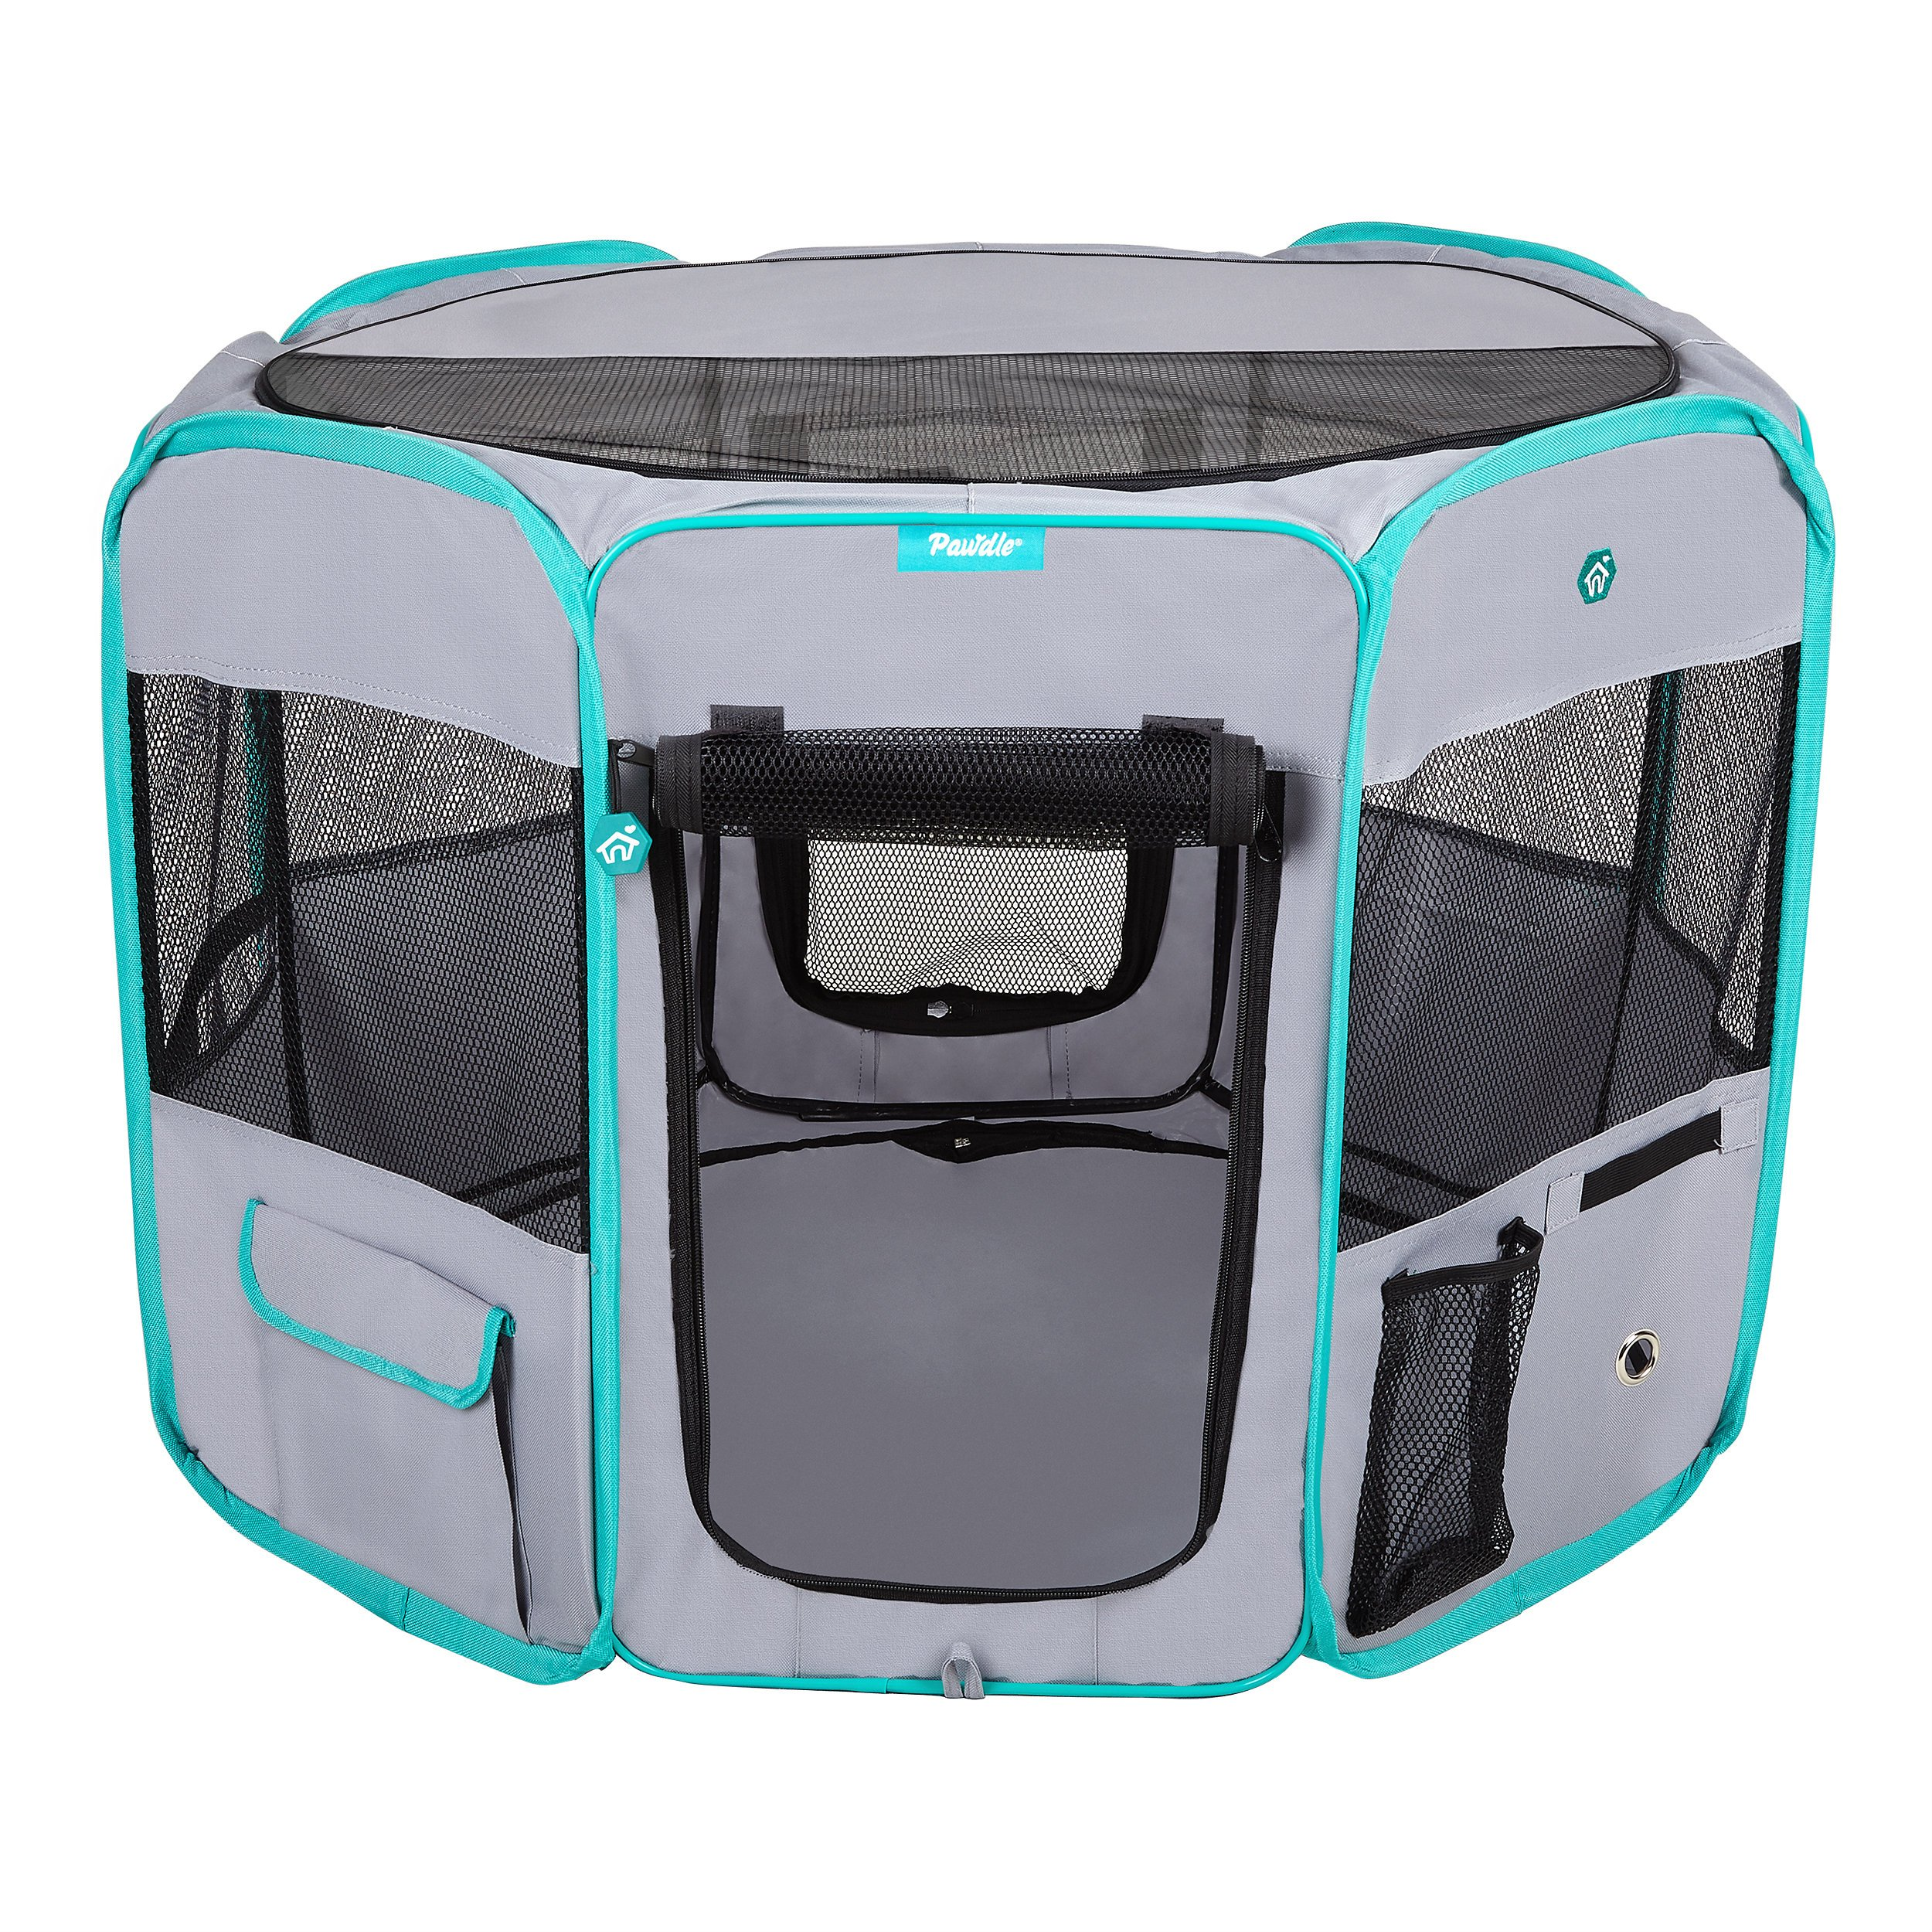 DELUXE PREMIUM Pet Dog Playpen Portable Soft Dog Exercise Pen Kennel with Carry Bag for Dogs, Cats, Kittens, and all Pets (Medium, Grey)